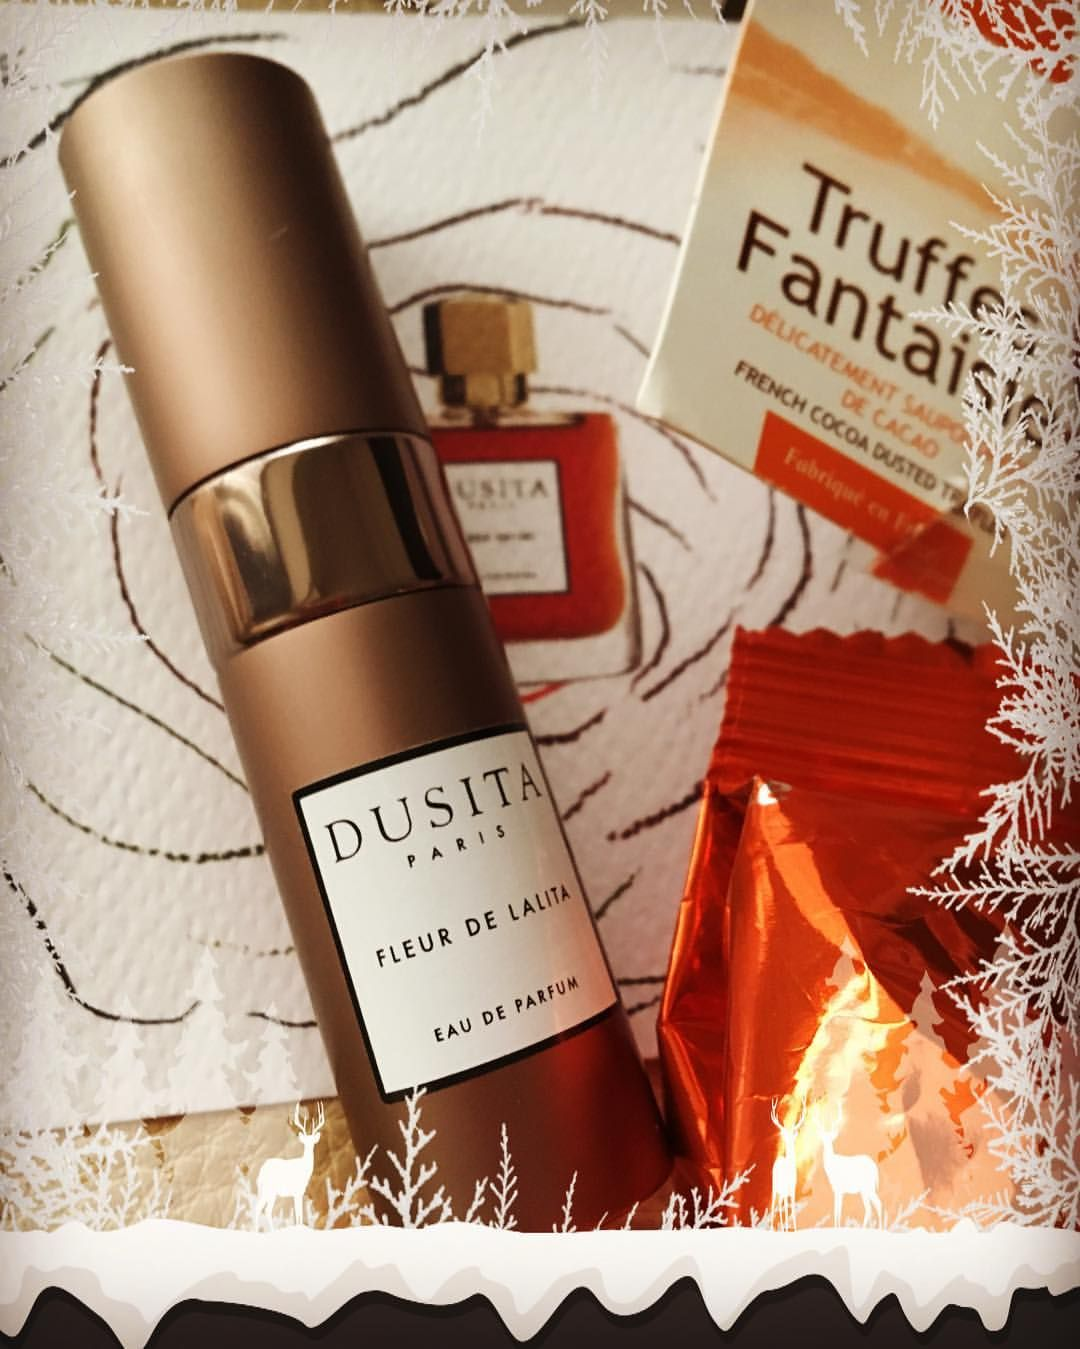 41 Likes 6 Comments Passionee De Parfums Cvmoninsta On Instagram Merry Christmas Wishing You Merry Christmas Wishes Christmas Wishes Wine Bottle